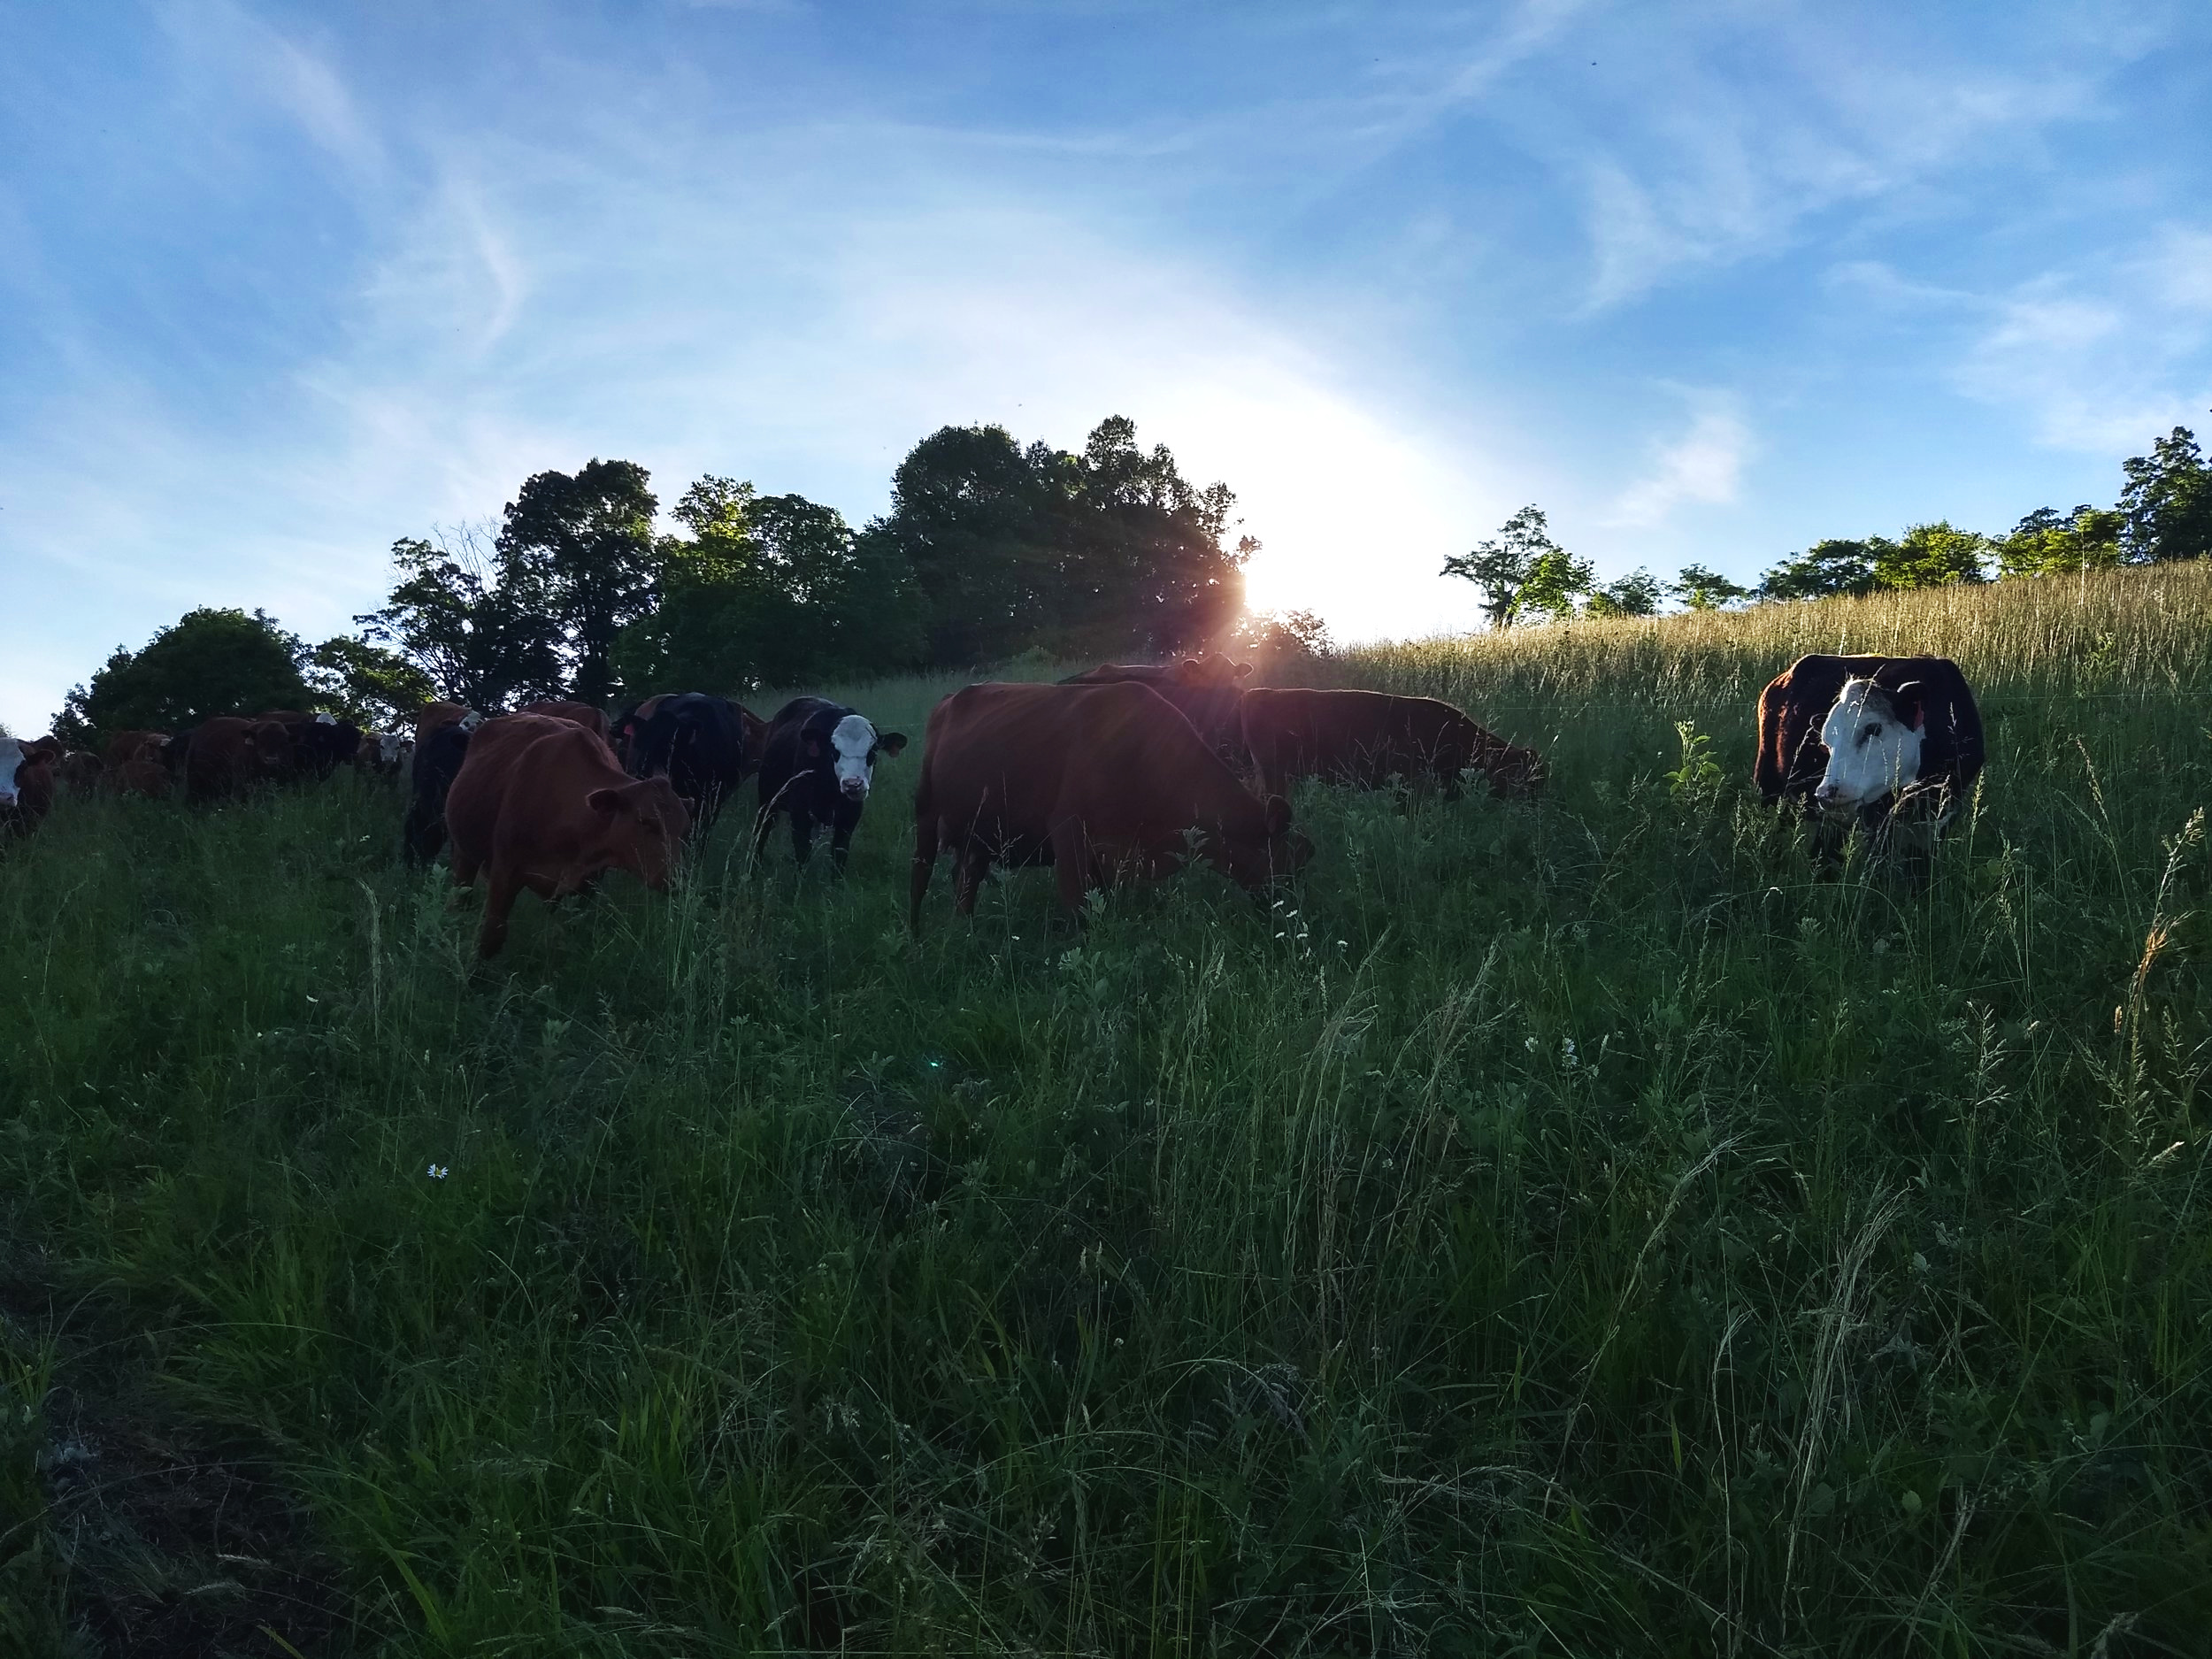 Happy Cows - The fields have grown so tall and the cows are enjoying the rich salad bar. We are doing the daily rotations and starting to do them twice daily as the days allow it. The cows have lost their winter coat and have smooth slick coats and fat bellies.